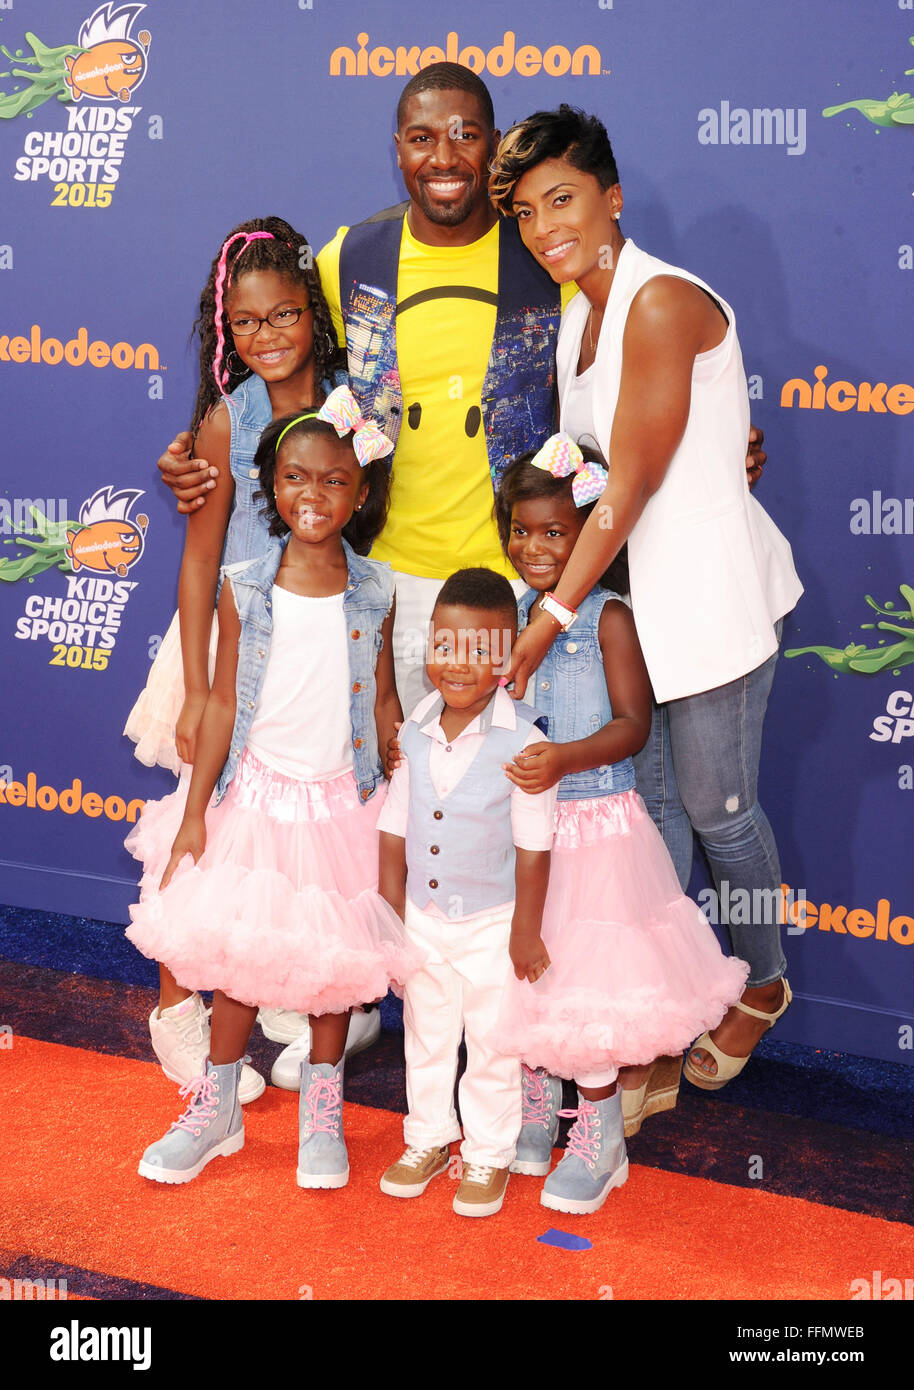 NFL player Greg Jennings and family arrive at the Nickelodeon Kids' Choice Sports Awards 2015 at UCLA's - Stock Image